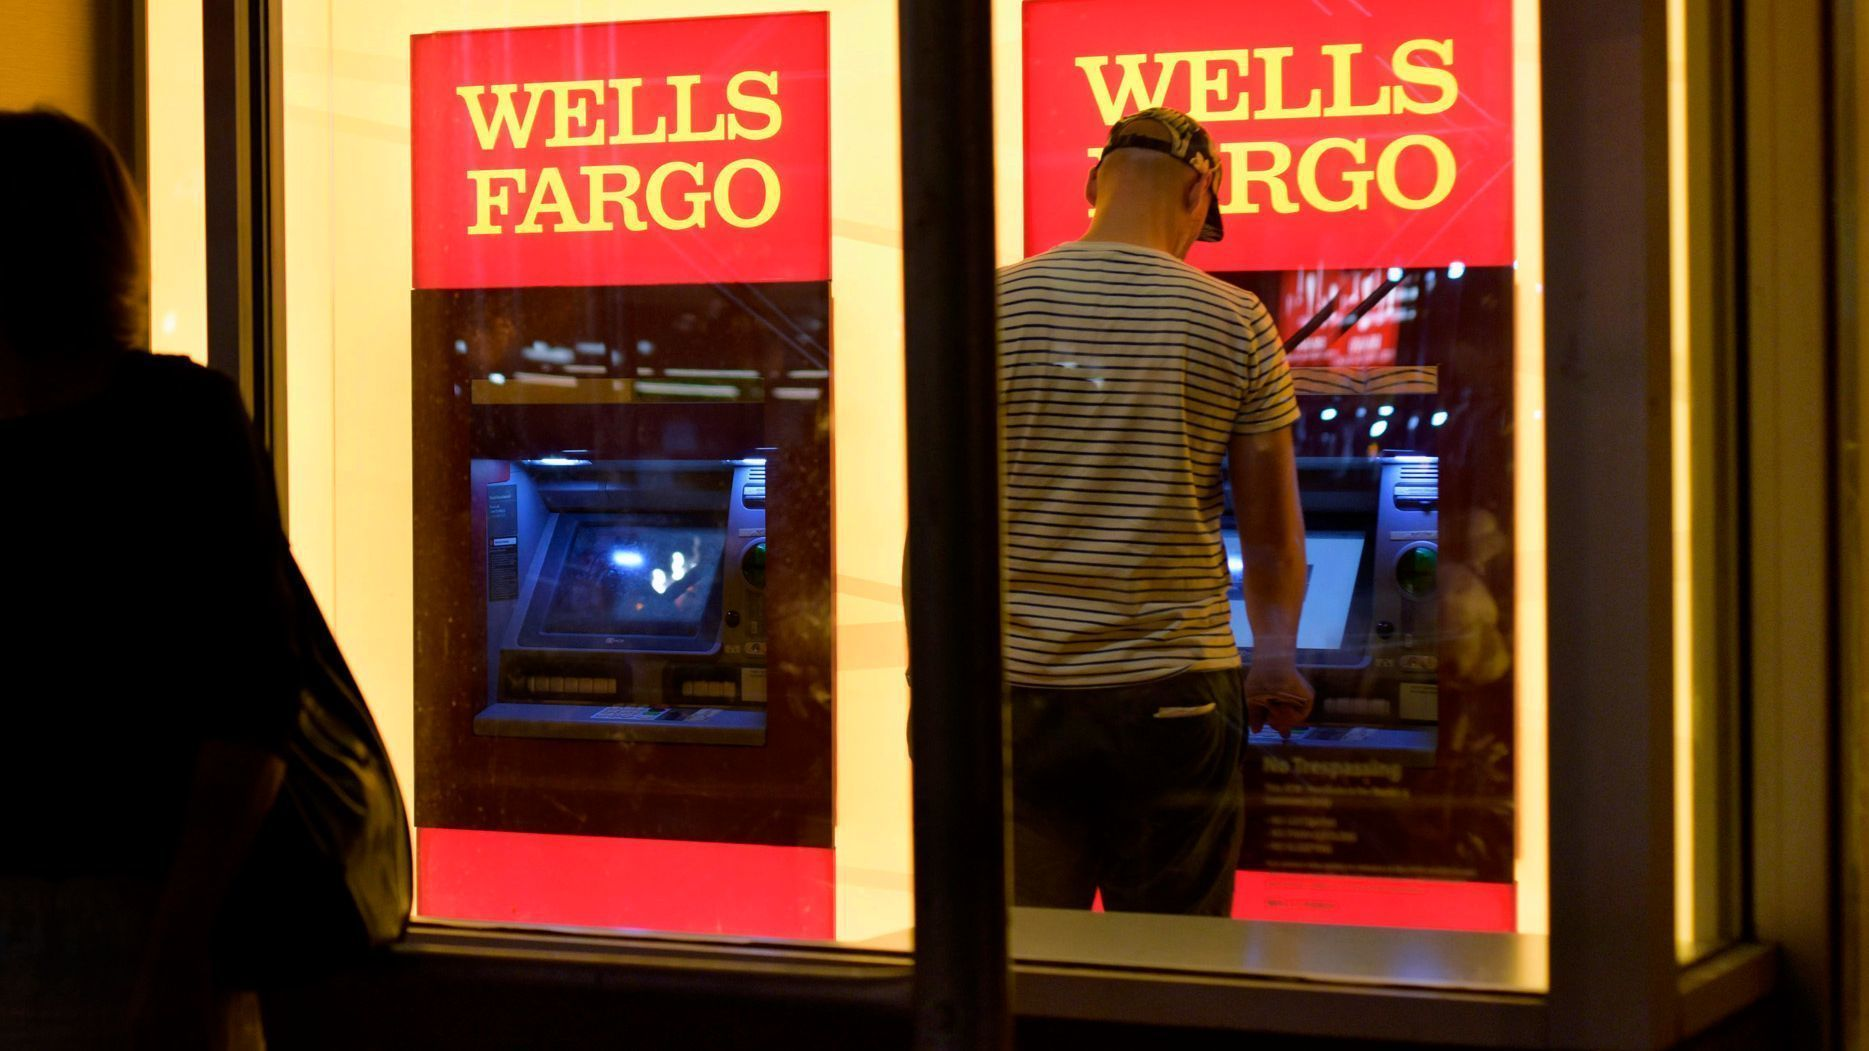 Wells Fargo poised to sell more businesses as it streamlines following accounts scandal